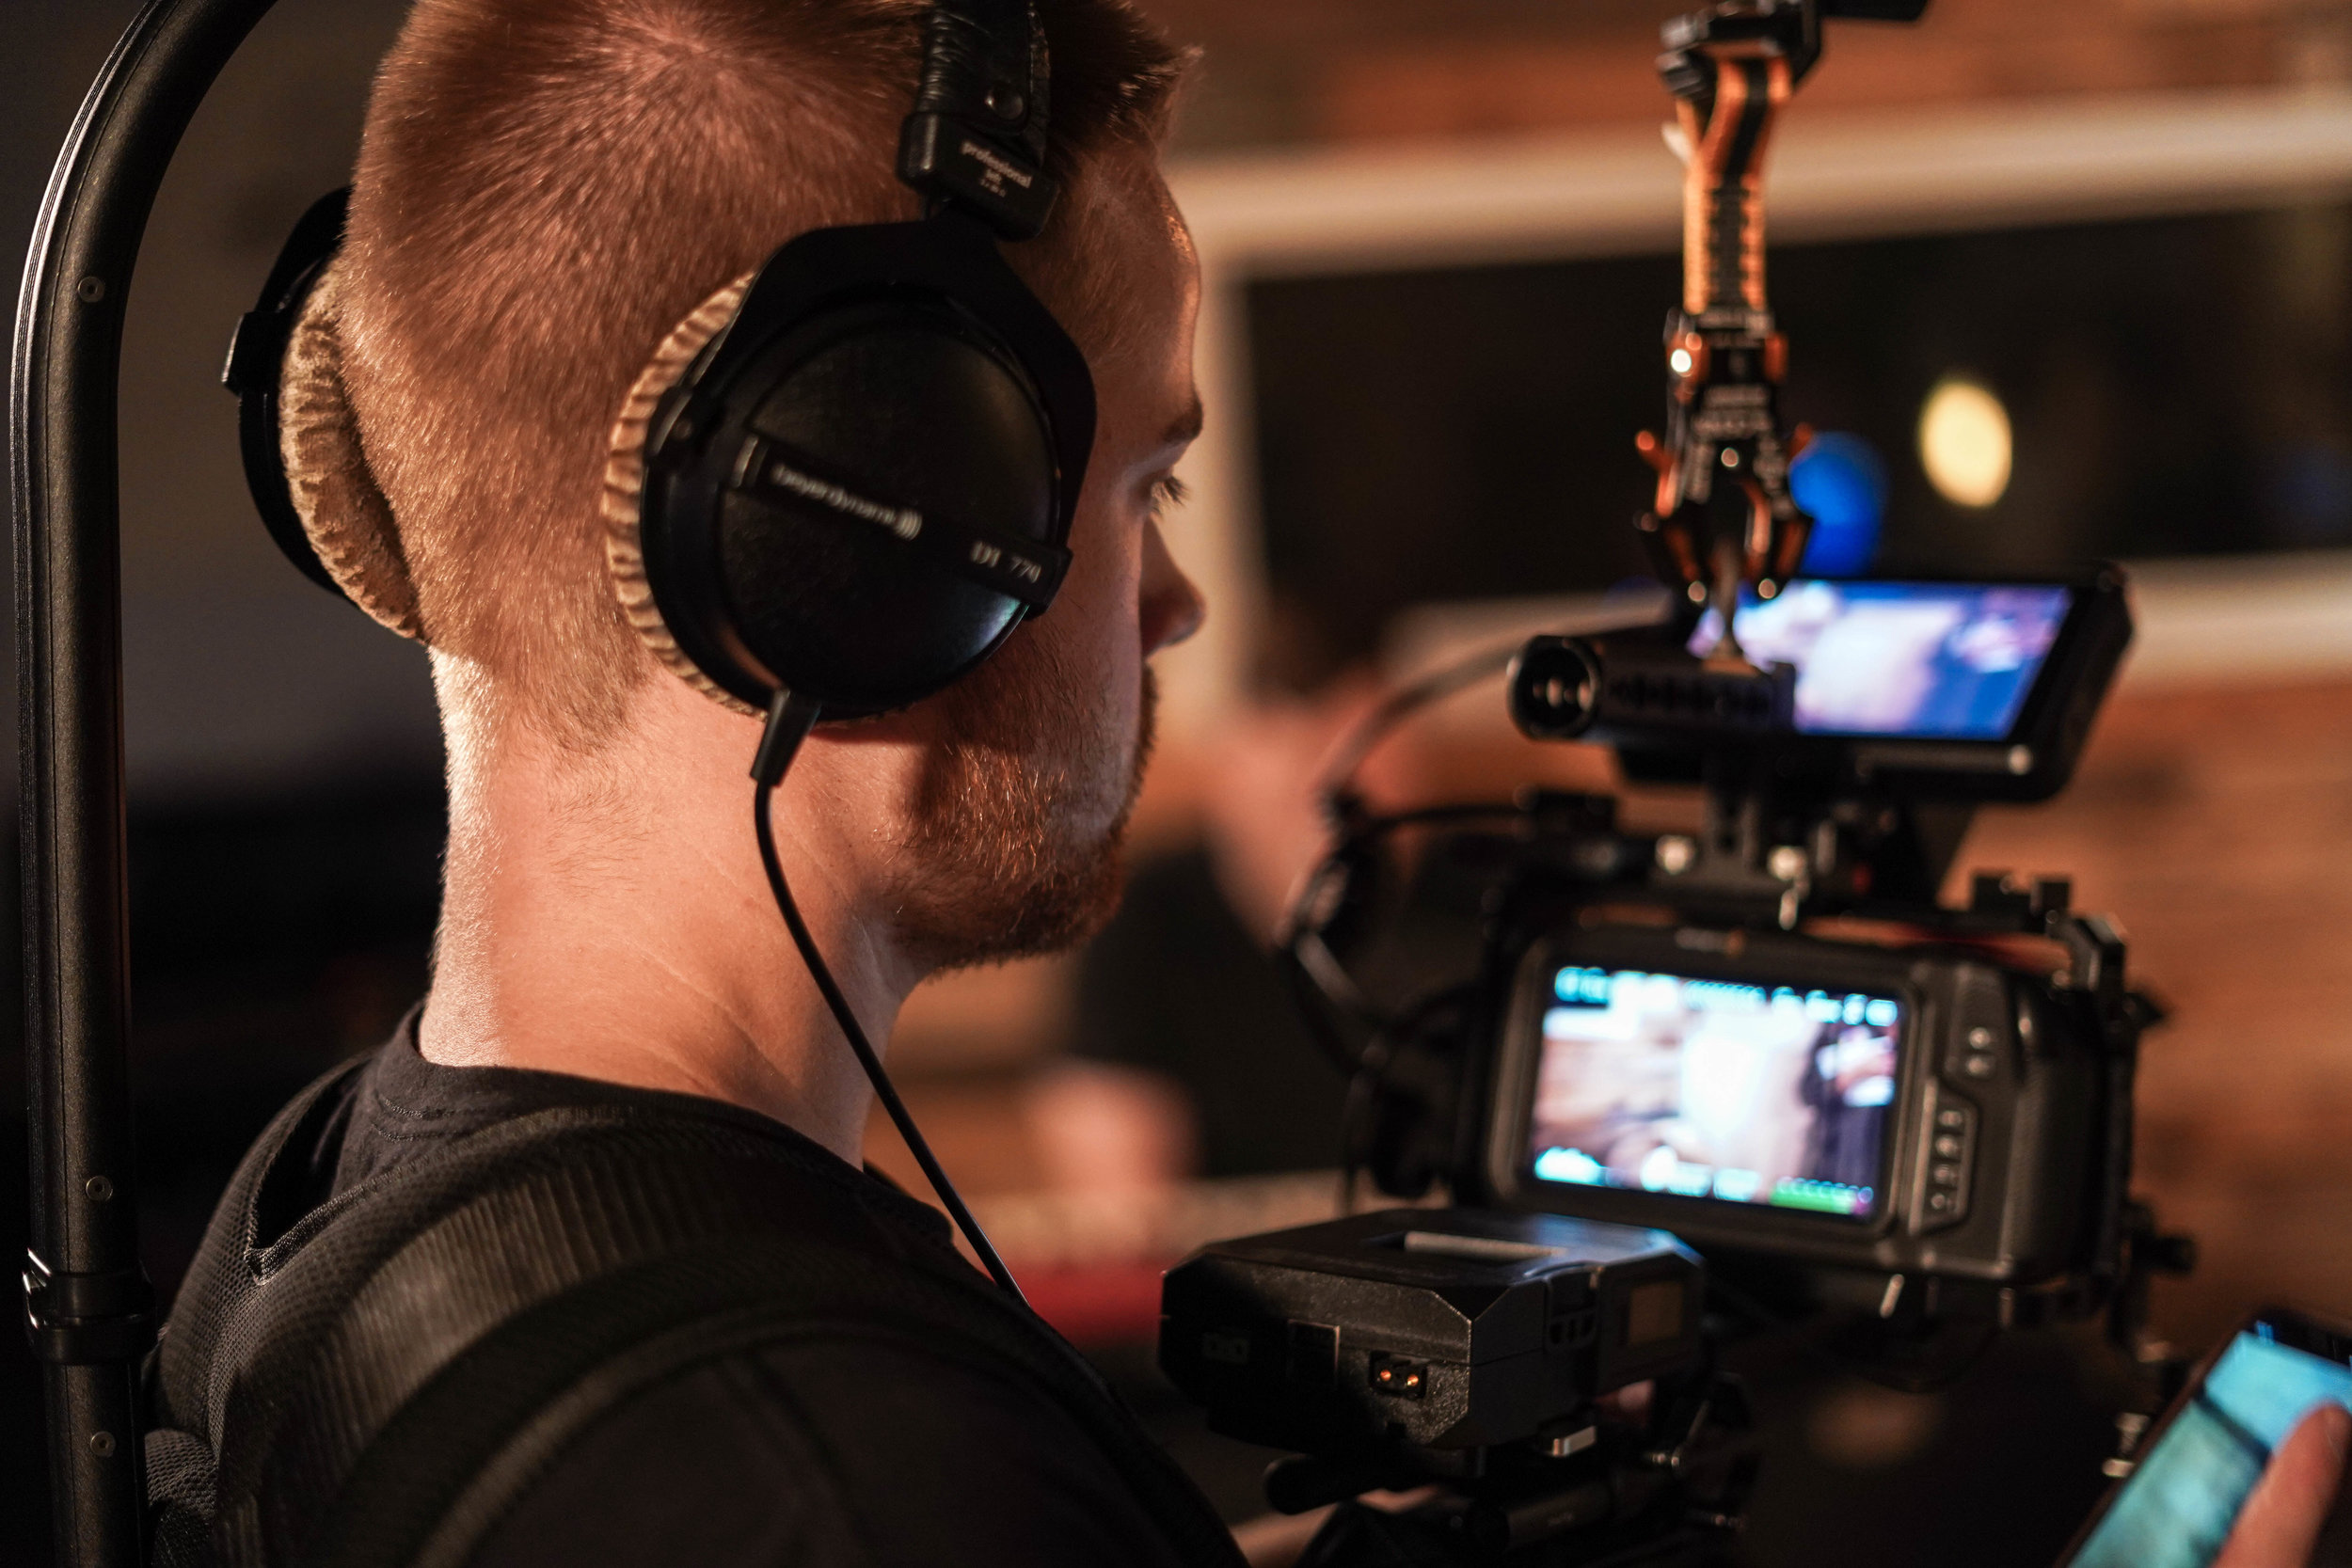 Media training will help ensure you're prepared before facing a journalist or camera crew.